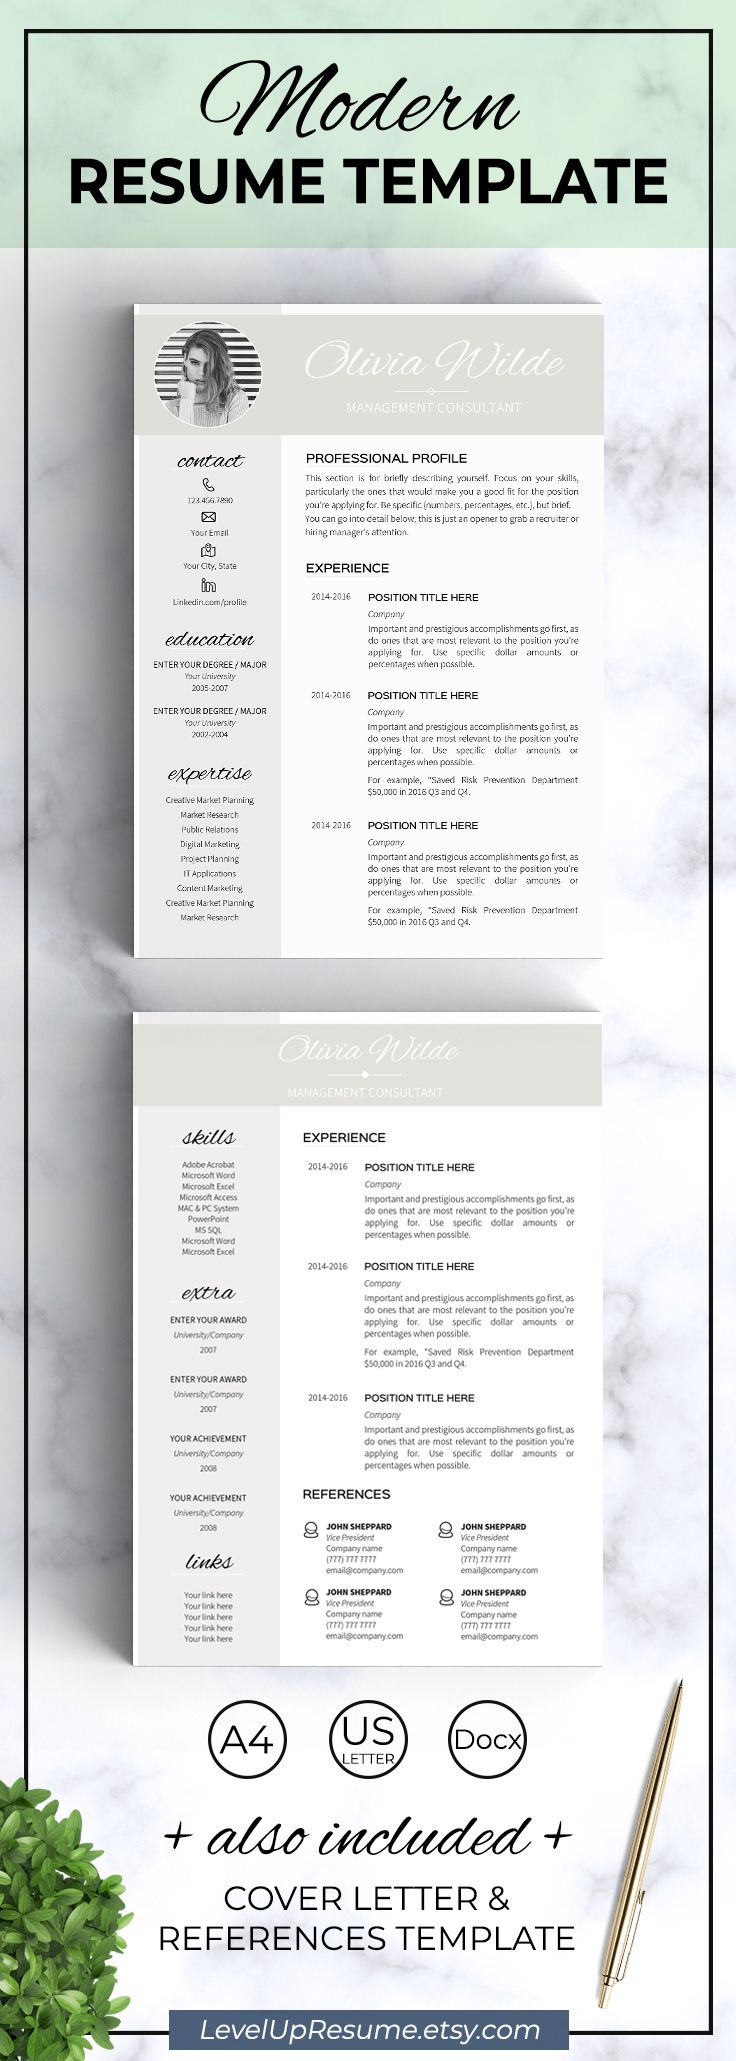 Modern Resume Templates Word Modern Resume Templates Word